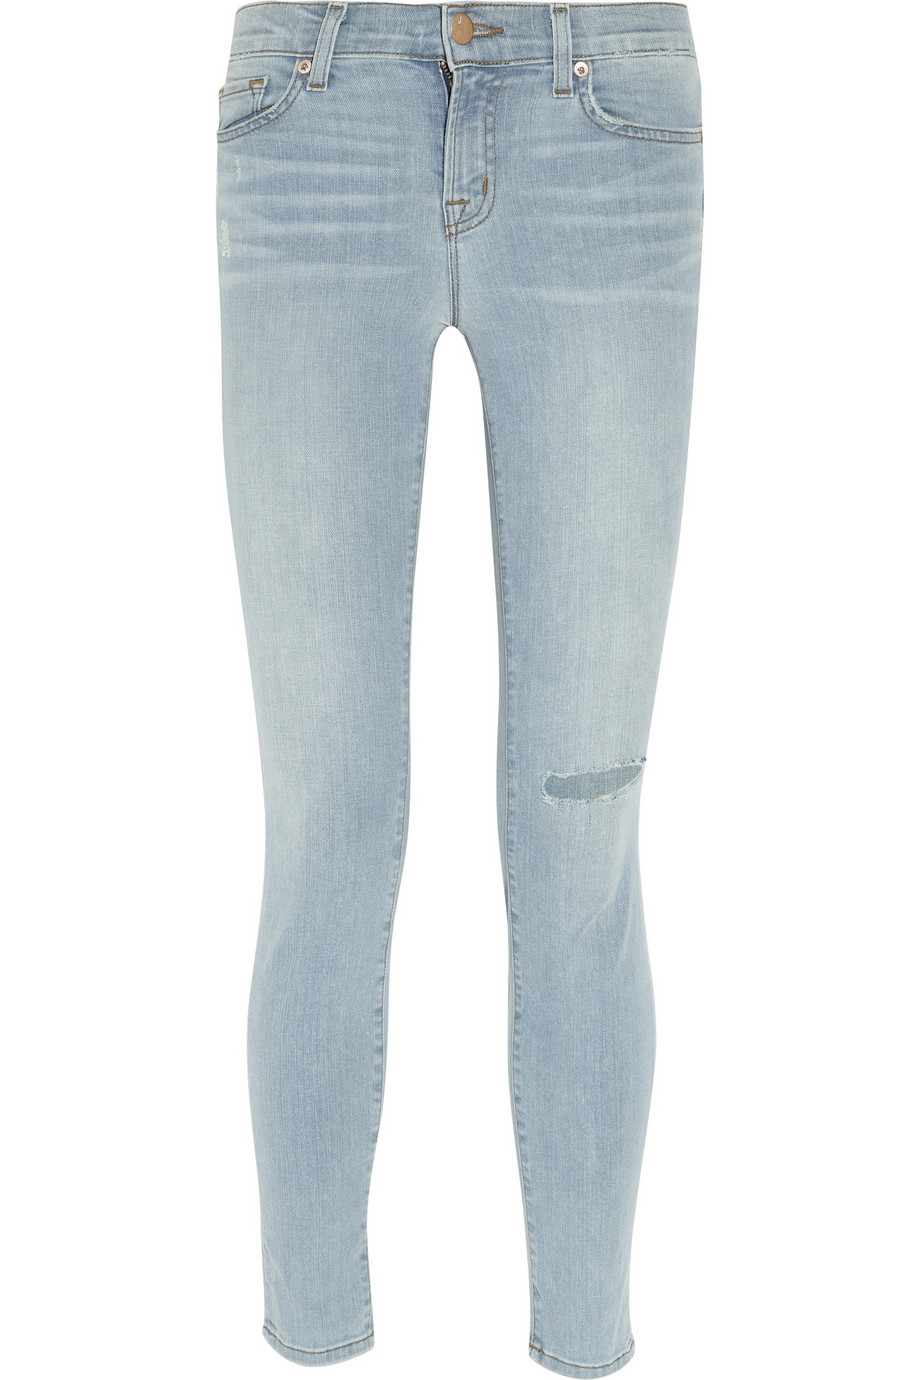 811 Rapture distressed mid-rise skinny jeans | THE OUTNET